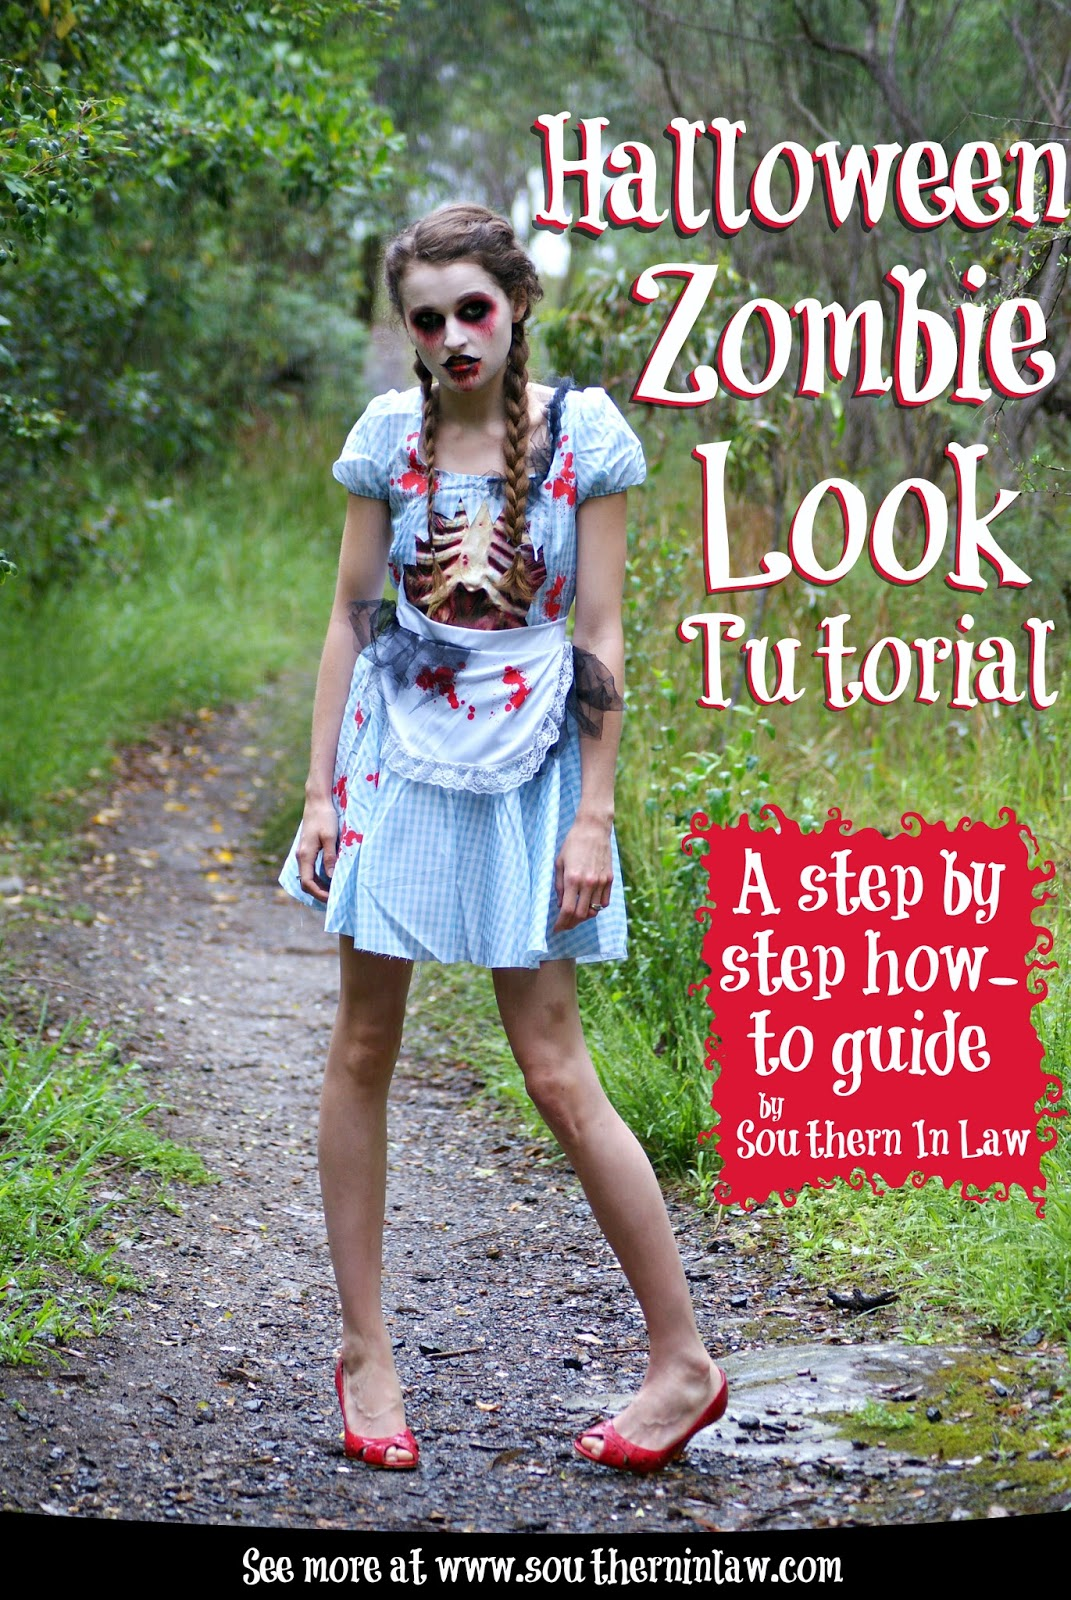 Step By Step Diagram Template: Southern In Law: Step By Step Halloween Zombie Look Tutorial